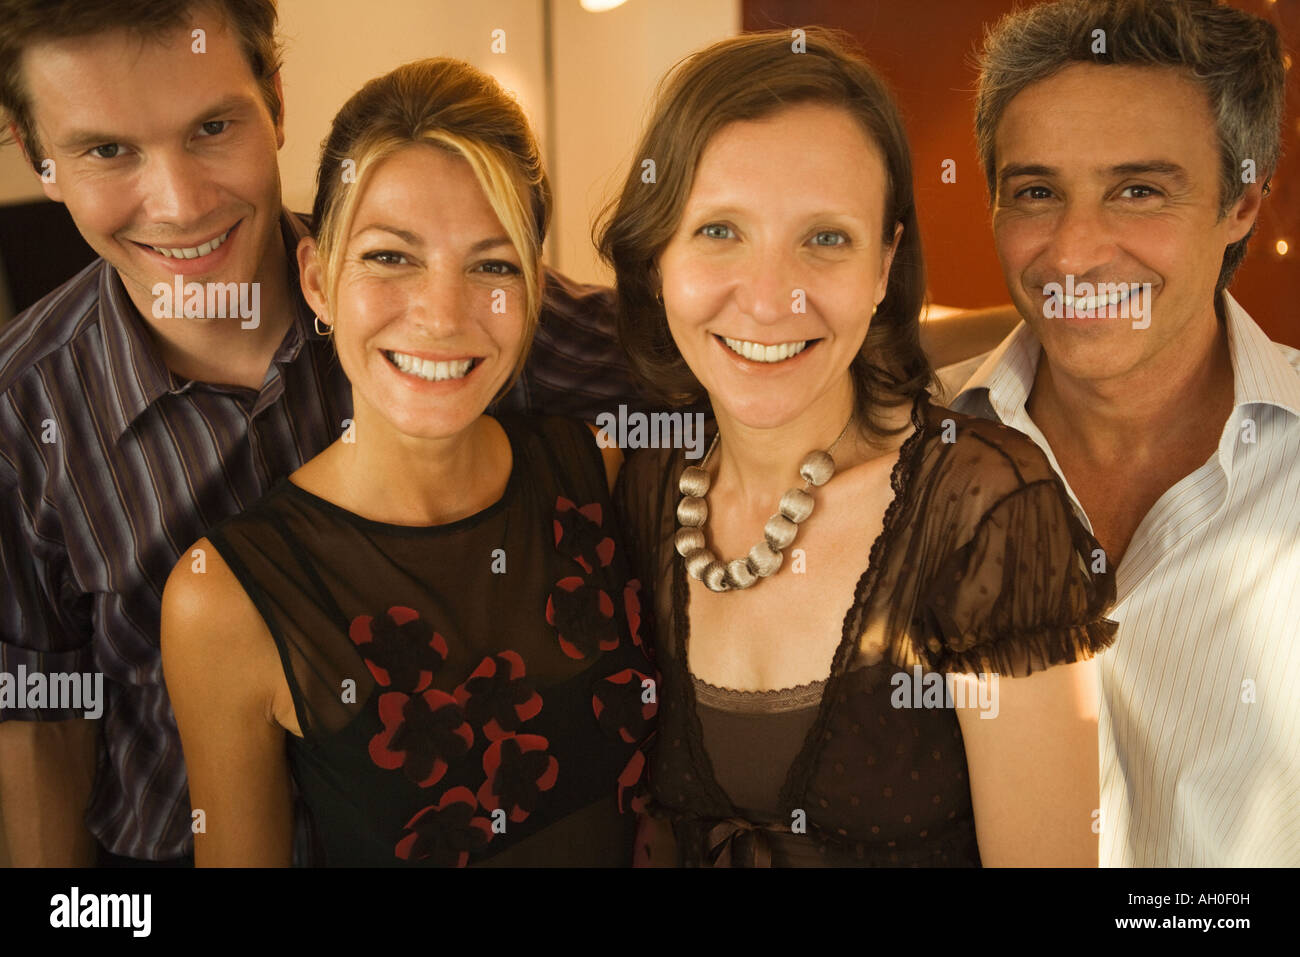 Four adult friends smiling at camera, group portrait - Stock Image